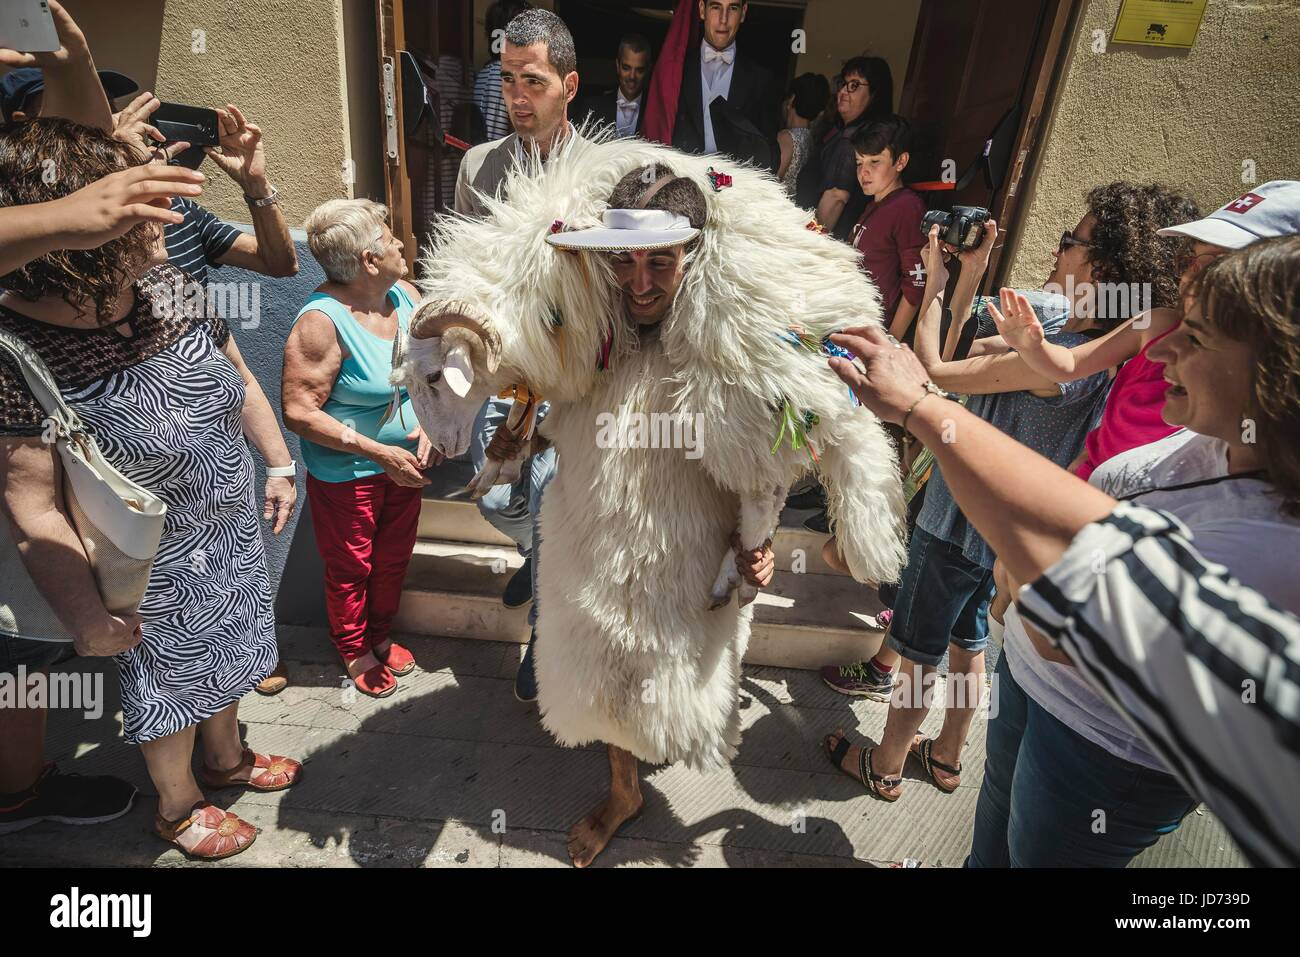 Ciutadella, Menorca. June 18th, 2017: People are looking for luck as the try to touch the docile sheep carried by - Stock Image